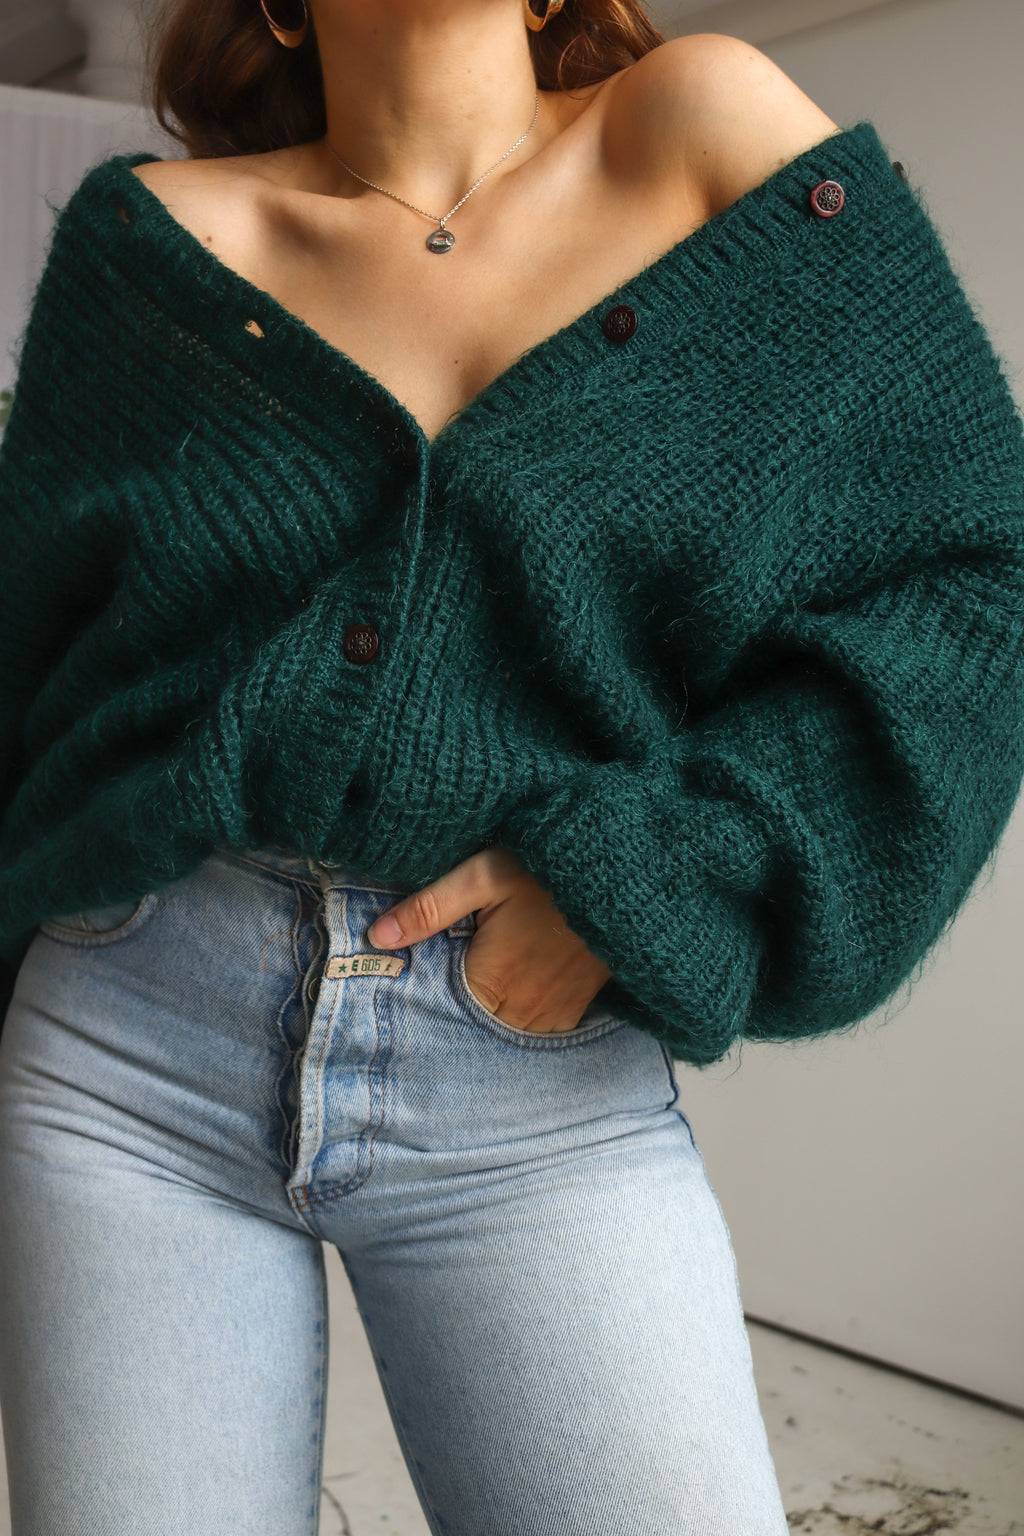 VintageOversized Cardigan in Emerald Green - Dirty Disco